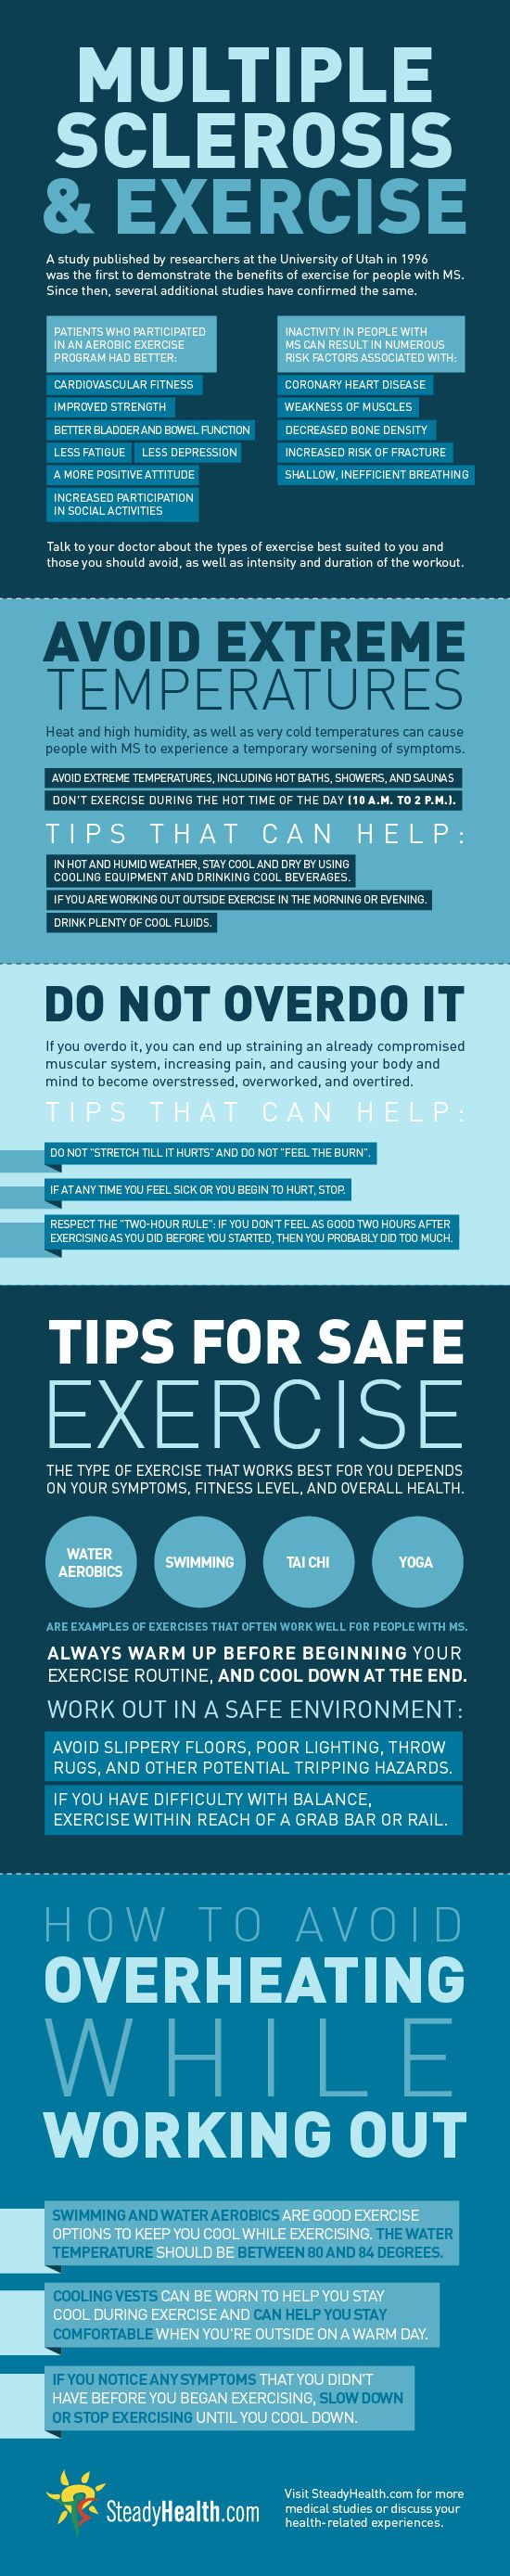 A study published in 1996 was the first to demonstrate the benefits of exercise for people with MS. This infographics shares several useful tips and precautions for MS patients who exercise. From SteadyHealth.com: